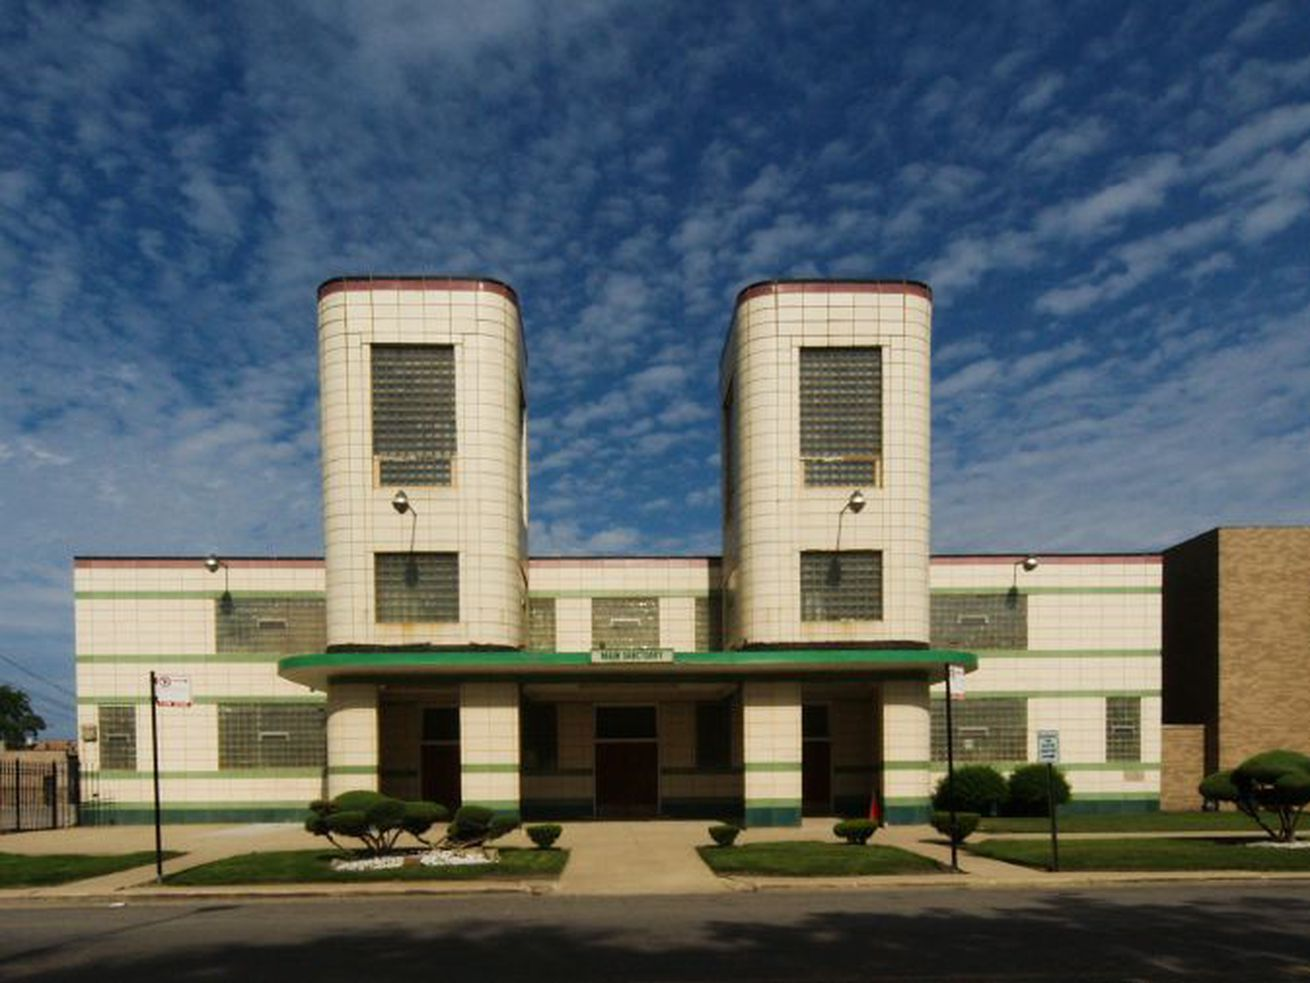 First Church of Deliverance